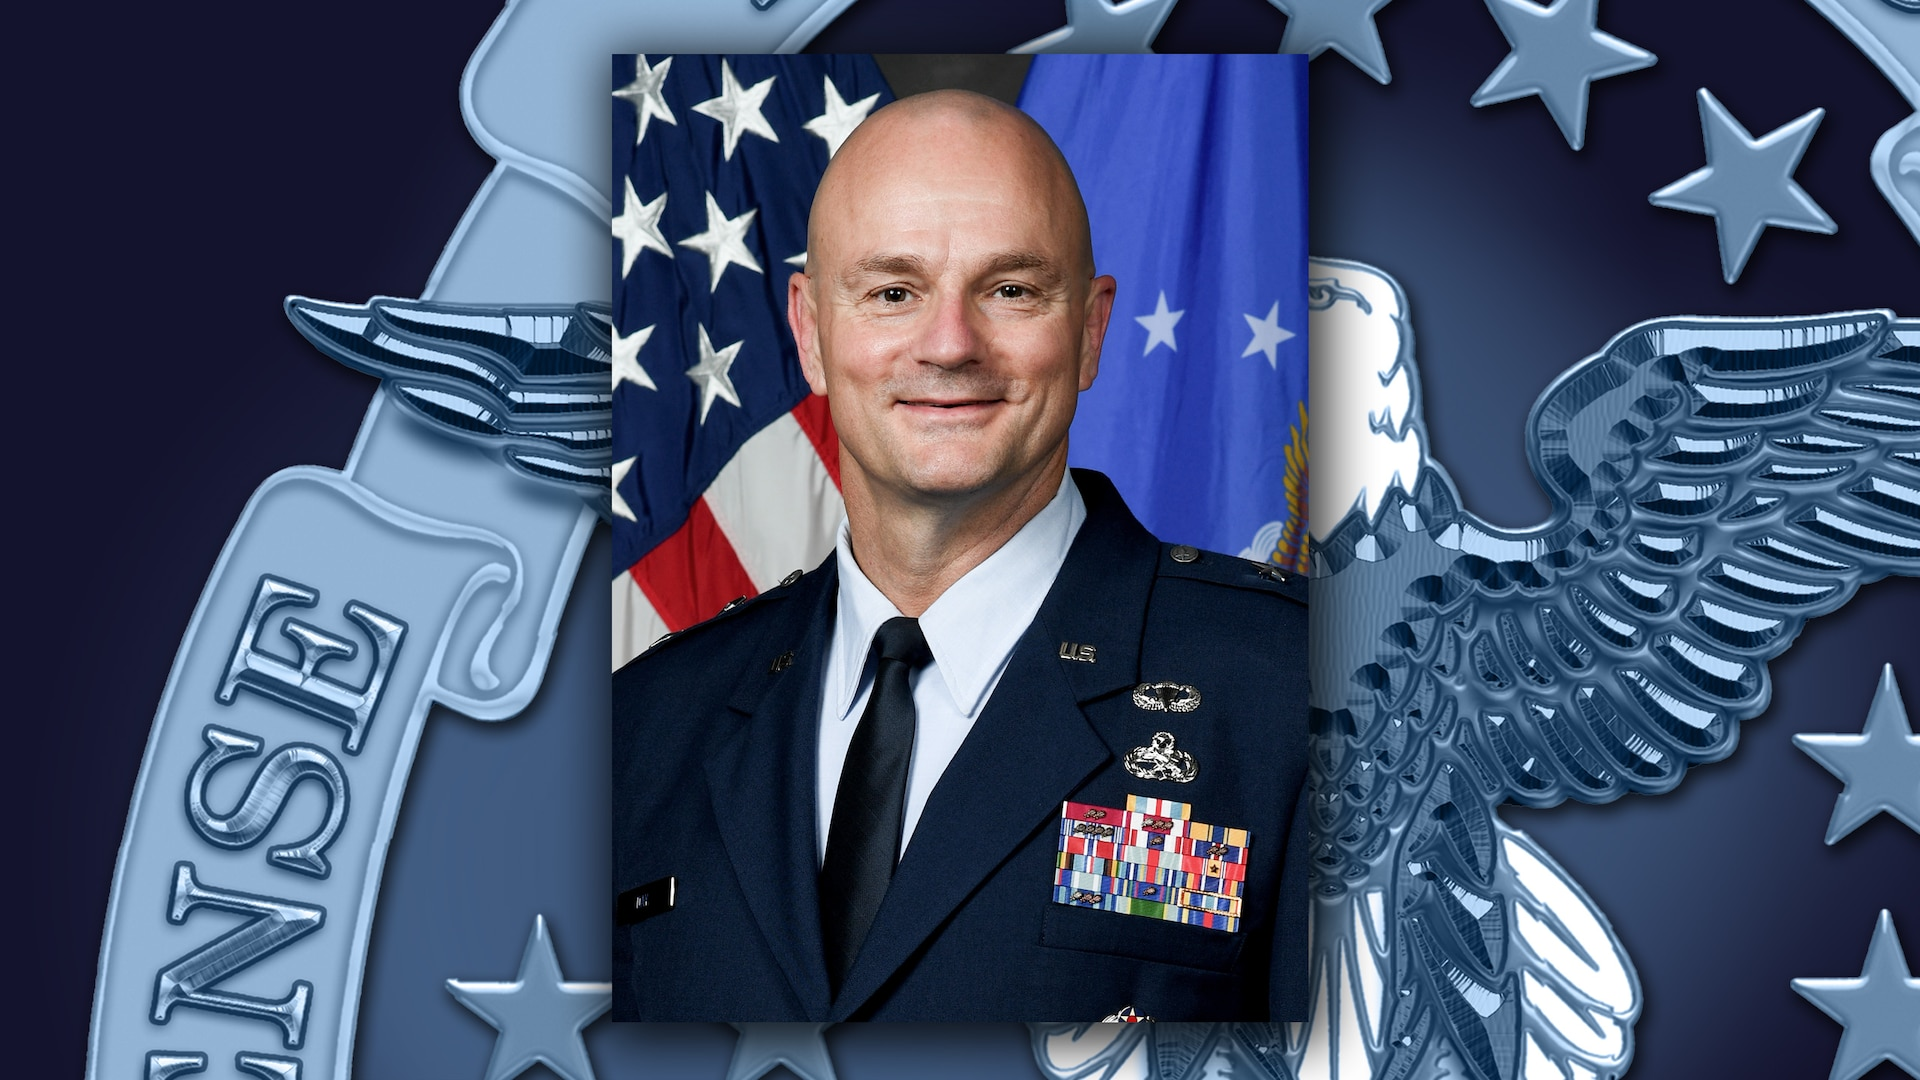 Man in Air Force dress uniform poses in front of a the US and DLA flags.